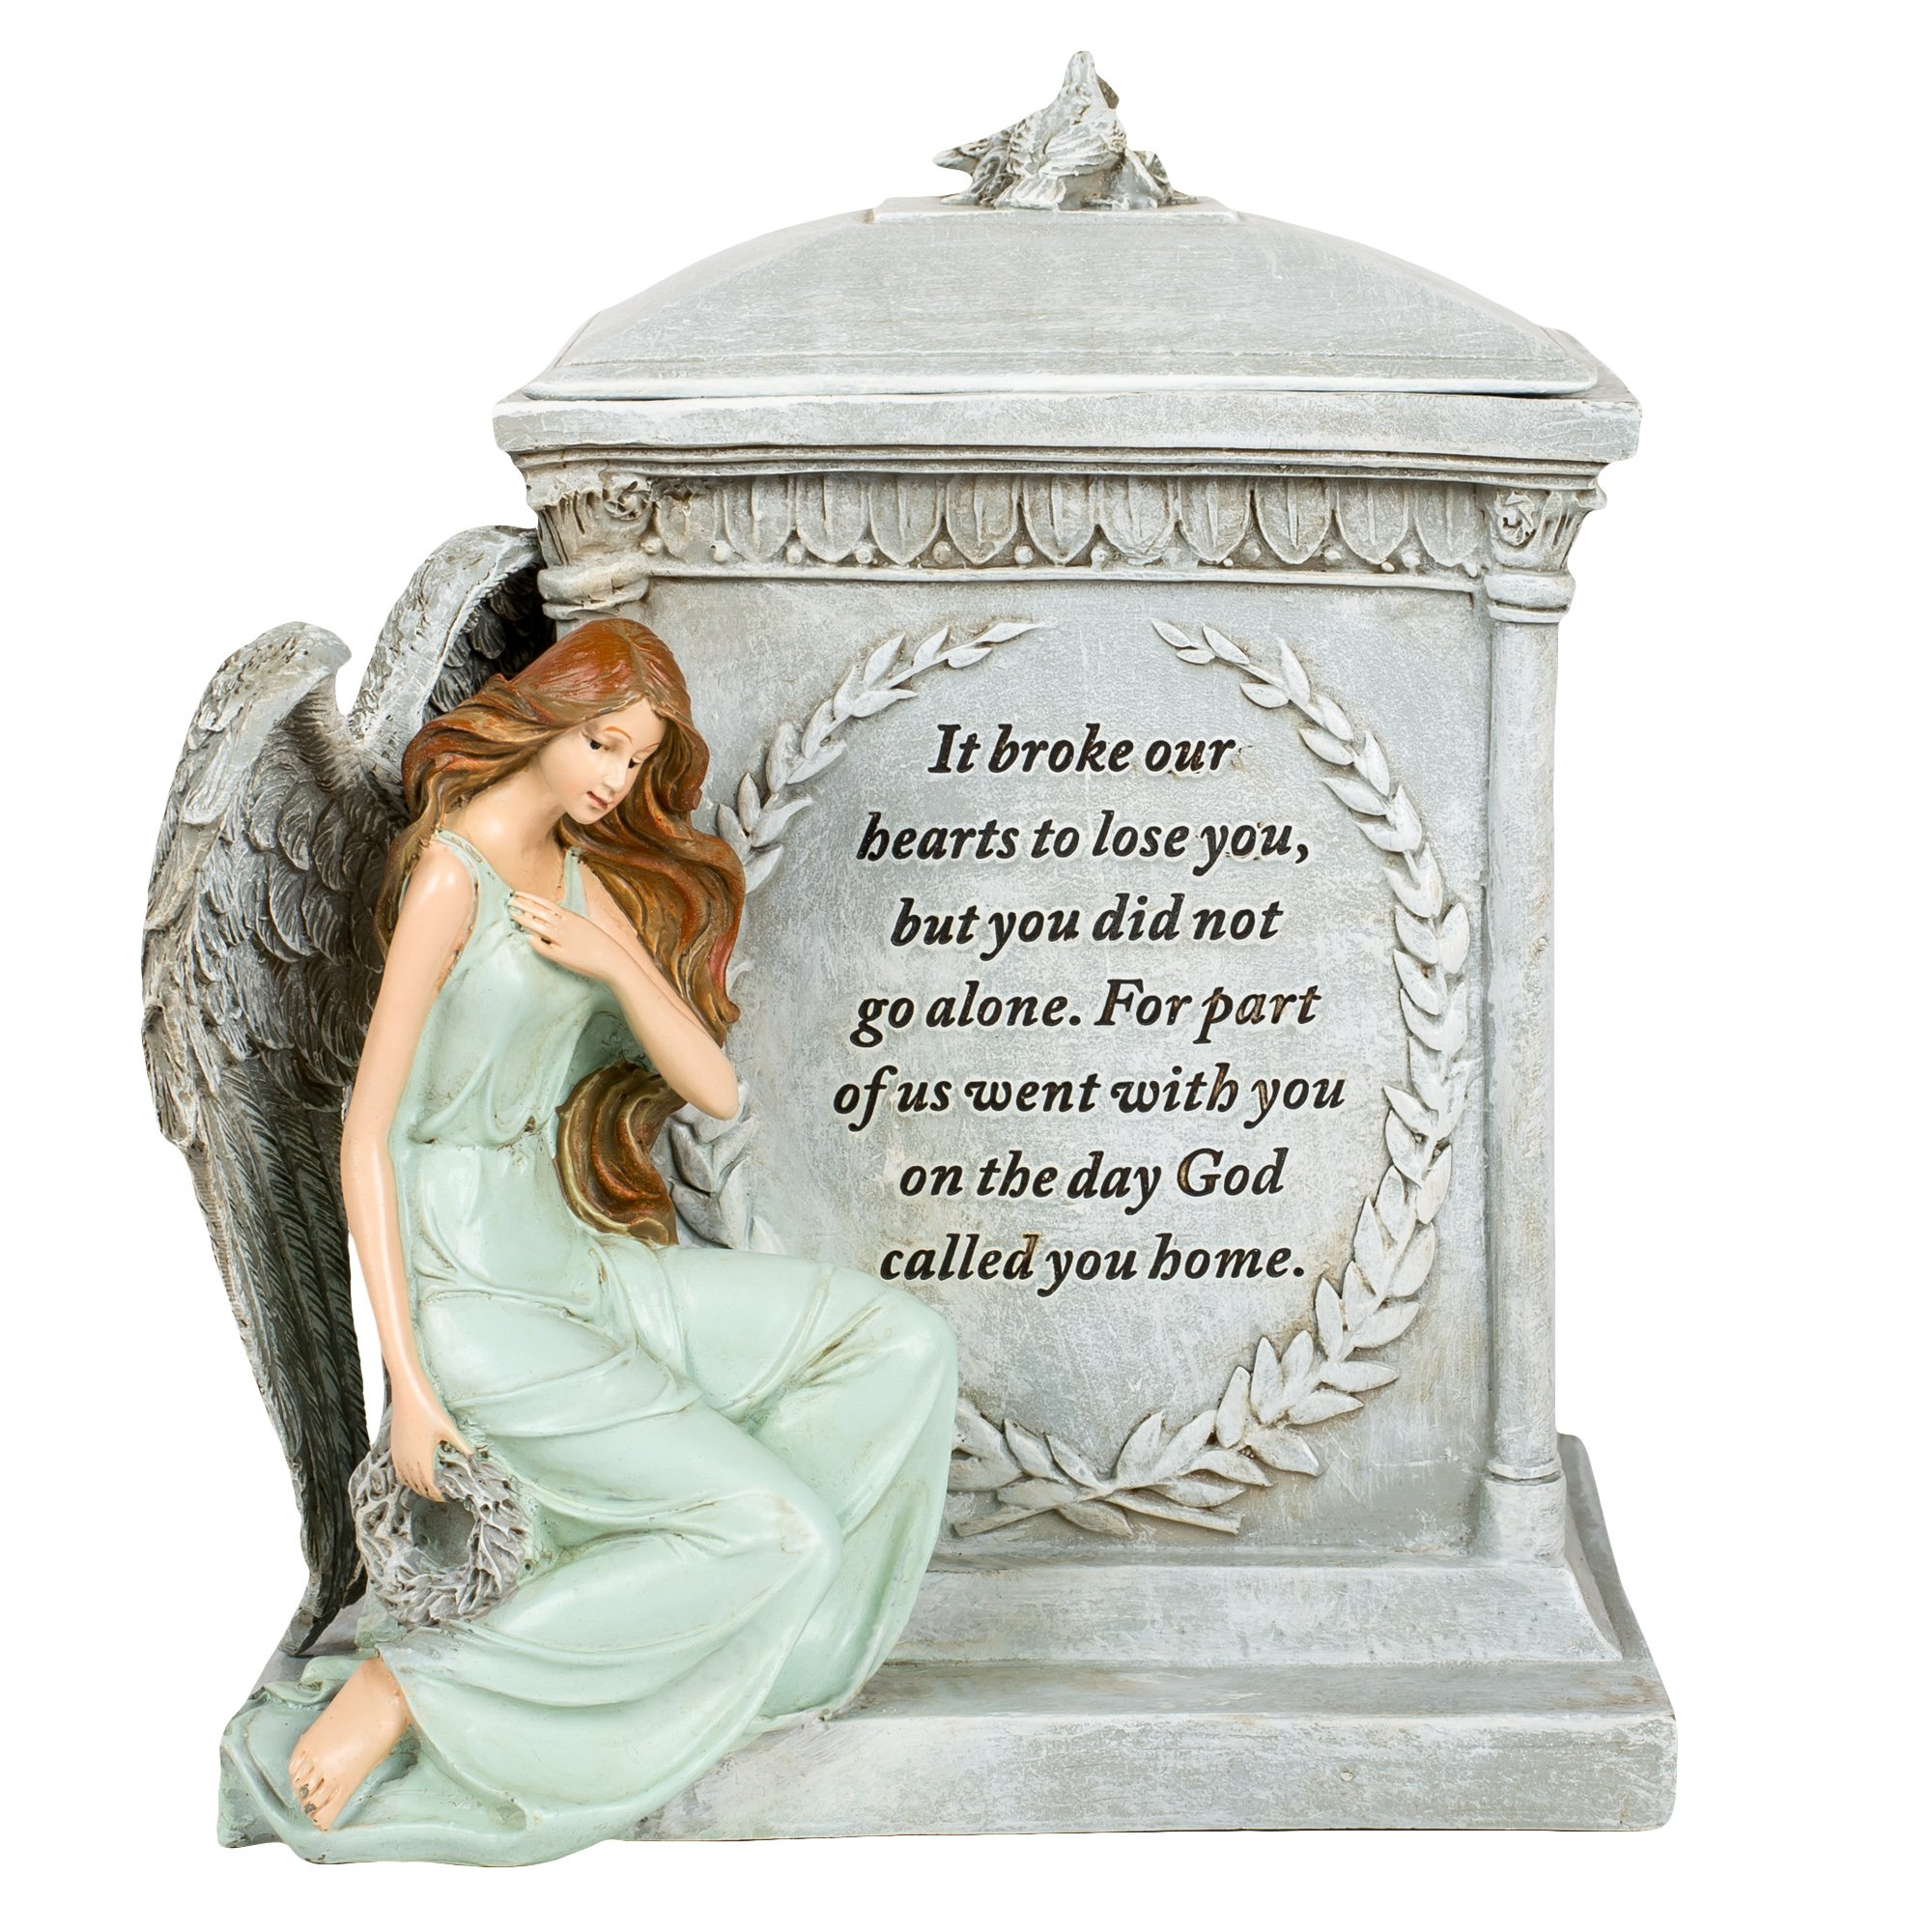 Roman 48476 8.5'' Inch Height Memorial Urn Forever with the Angels